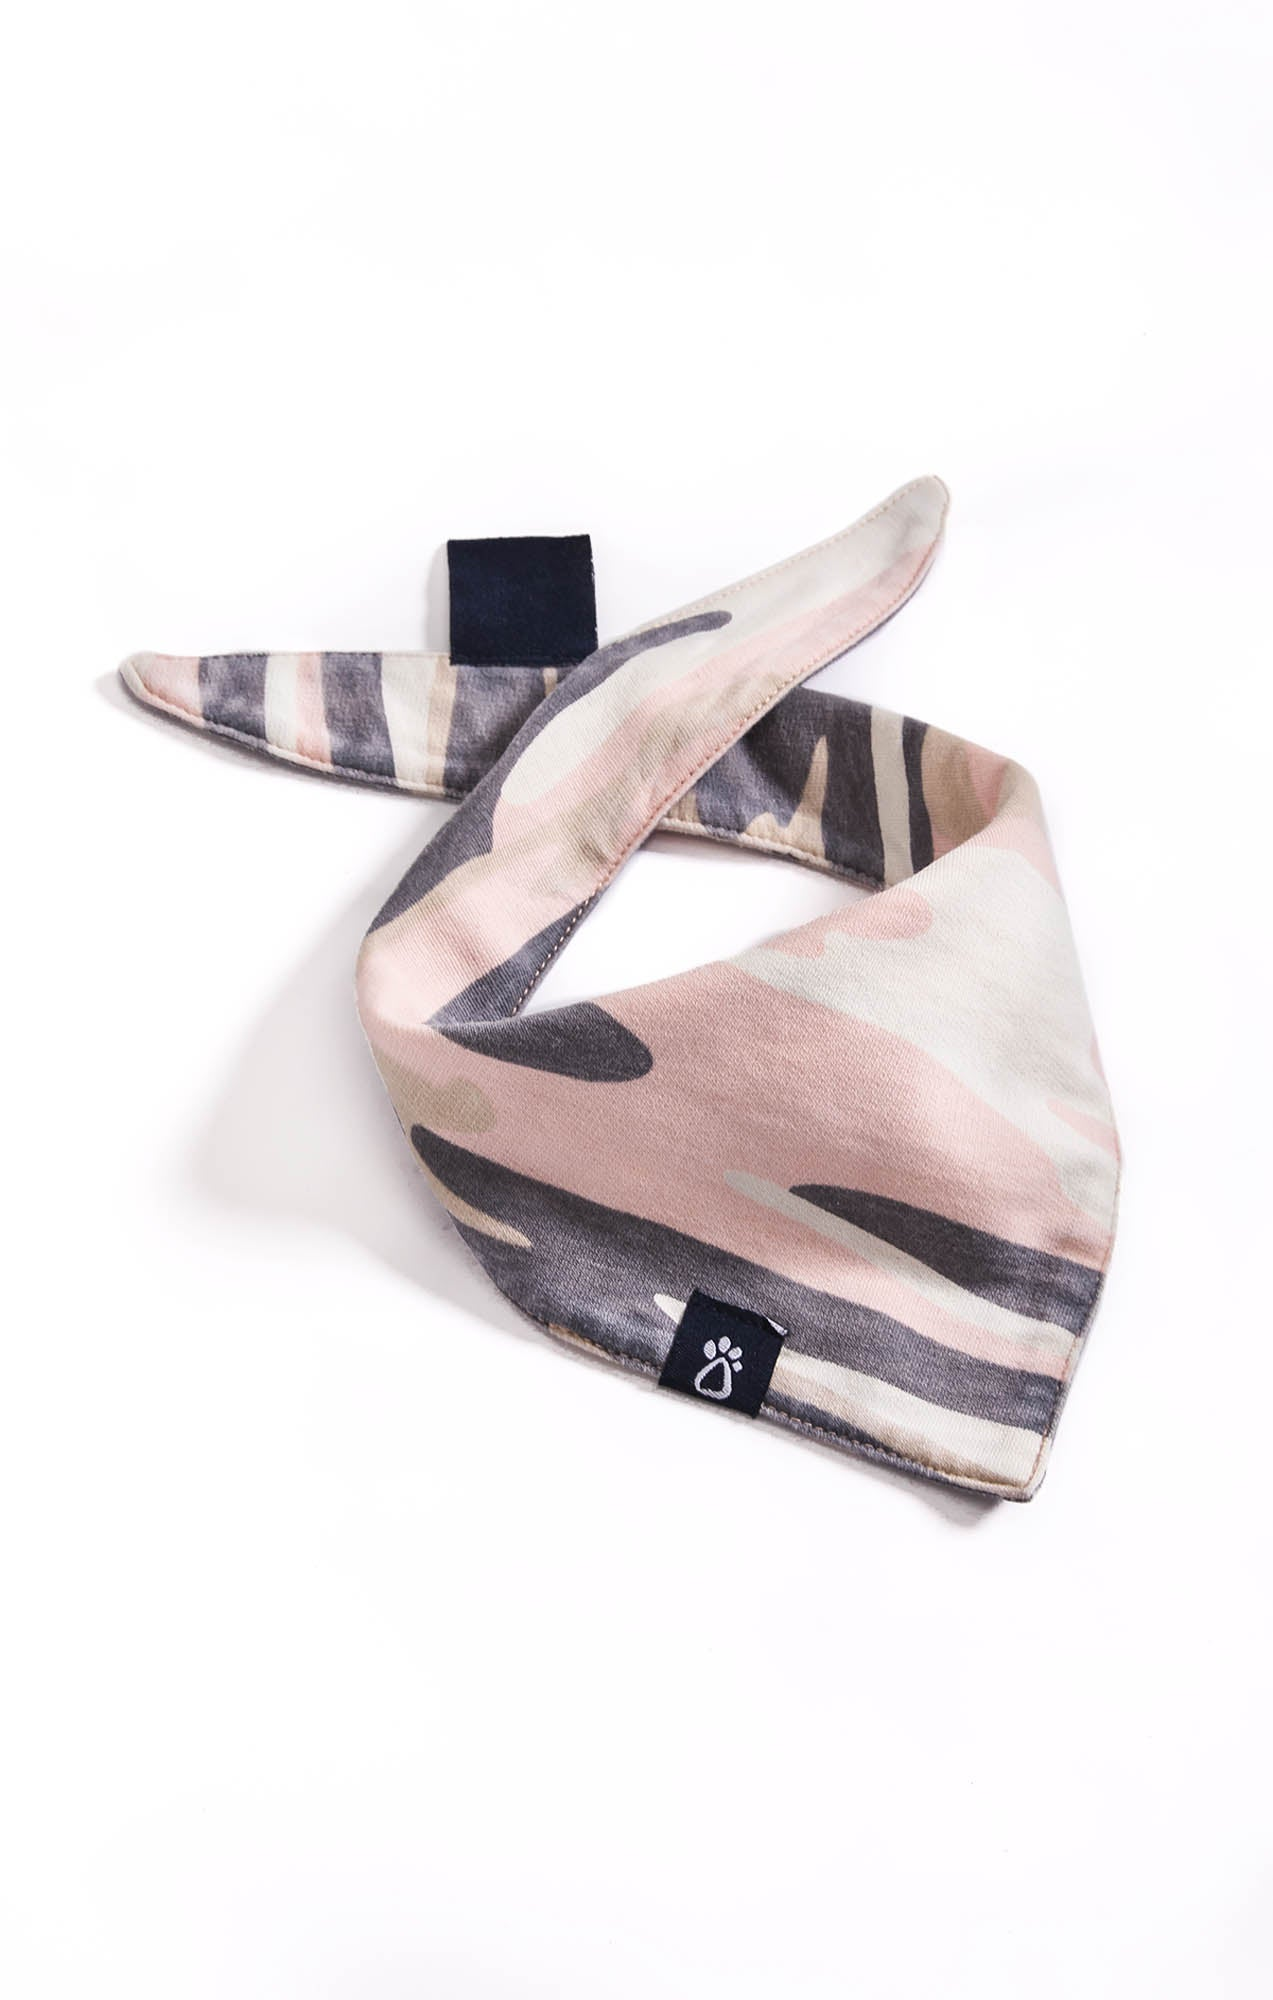 Bandana The Camo Bandana by ZOO SUPPLY Camo Pink